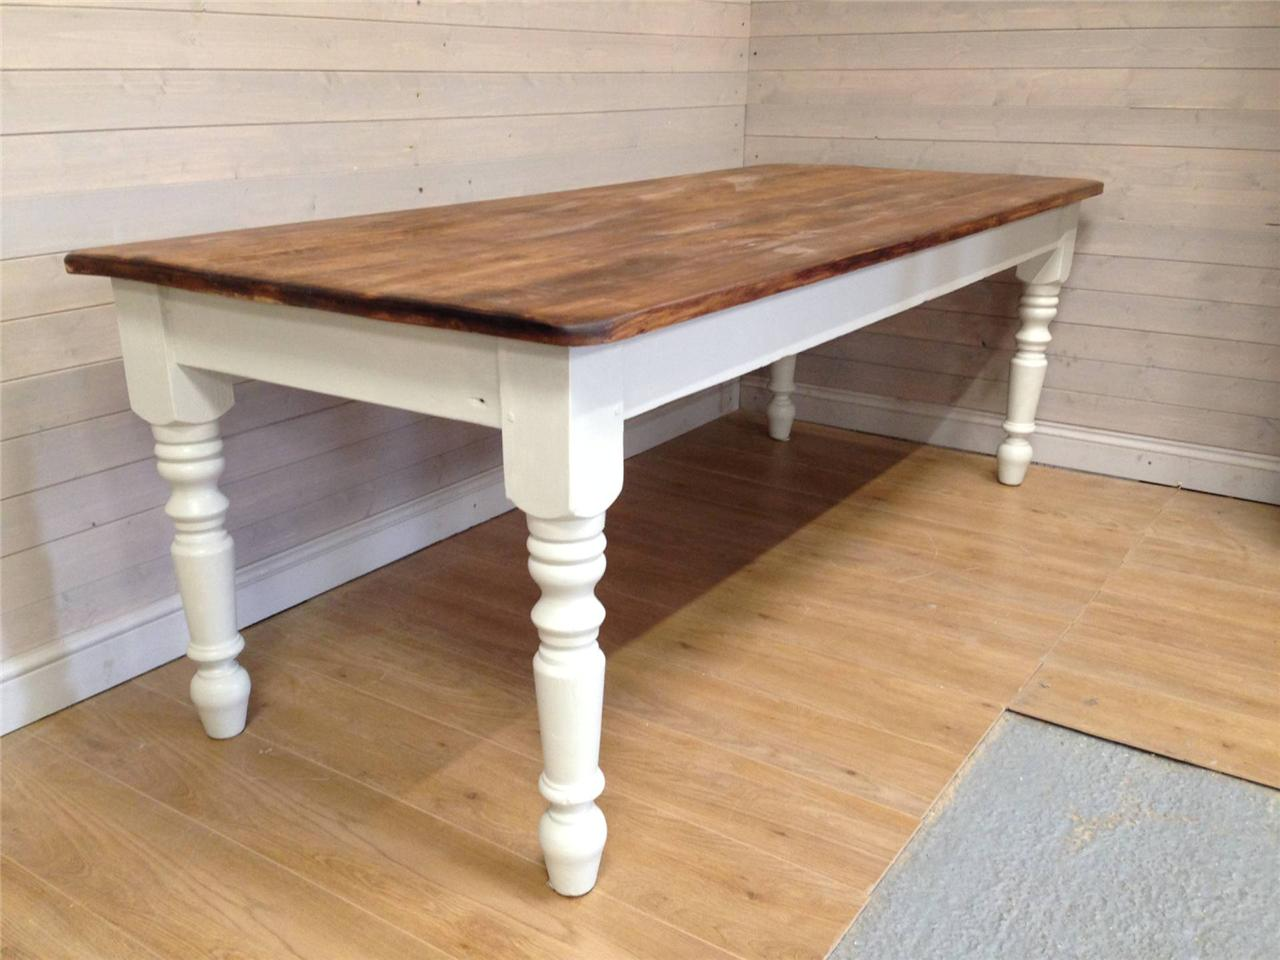 Rustic Reclaimed Solid Pine Farmhouse Dining Table Shabby Chic Painted